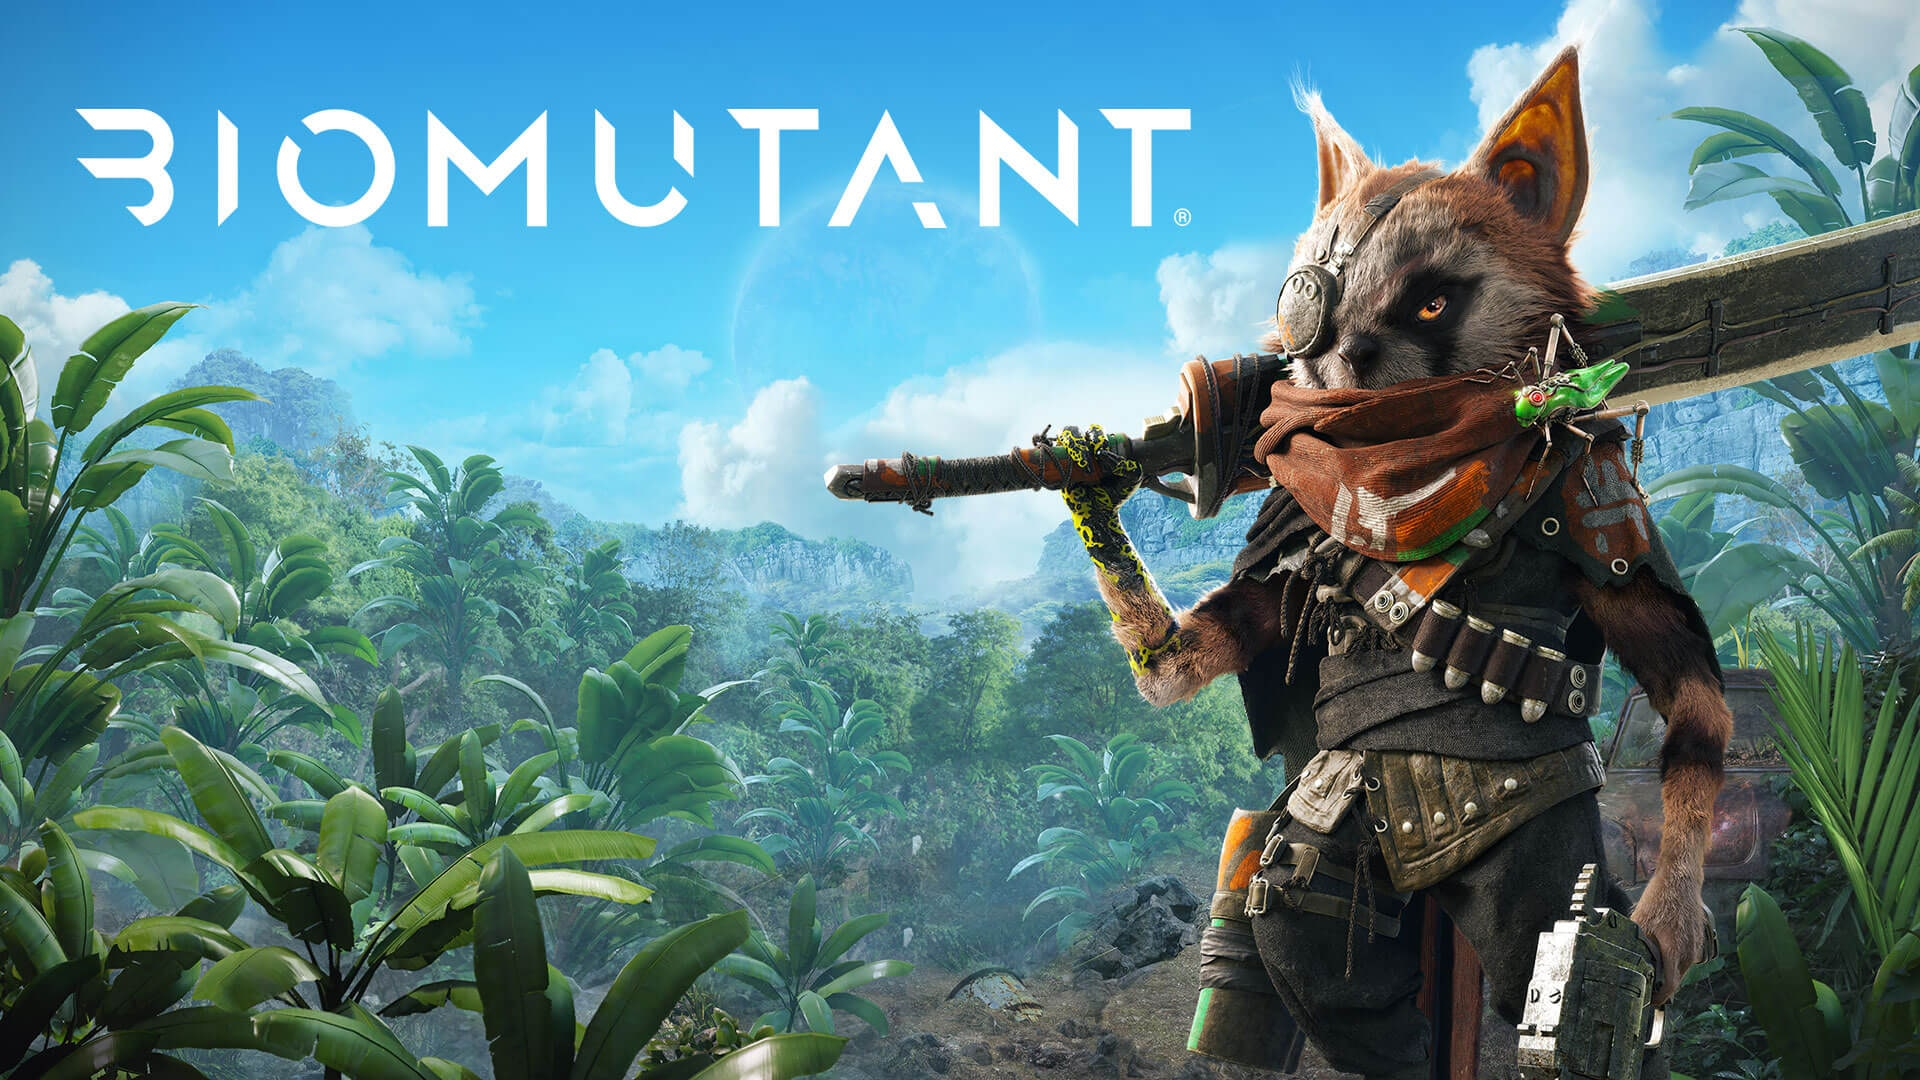 A look at the open world in Biomutant